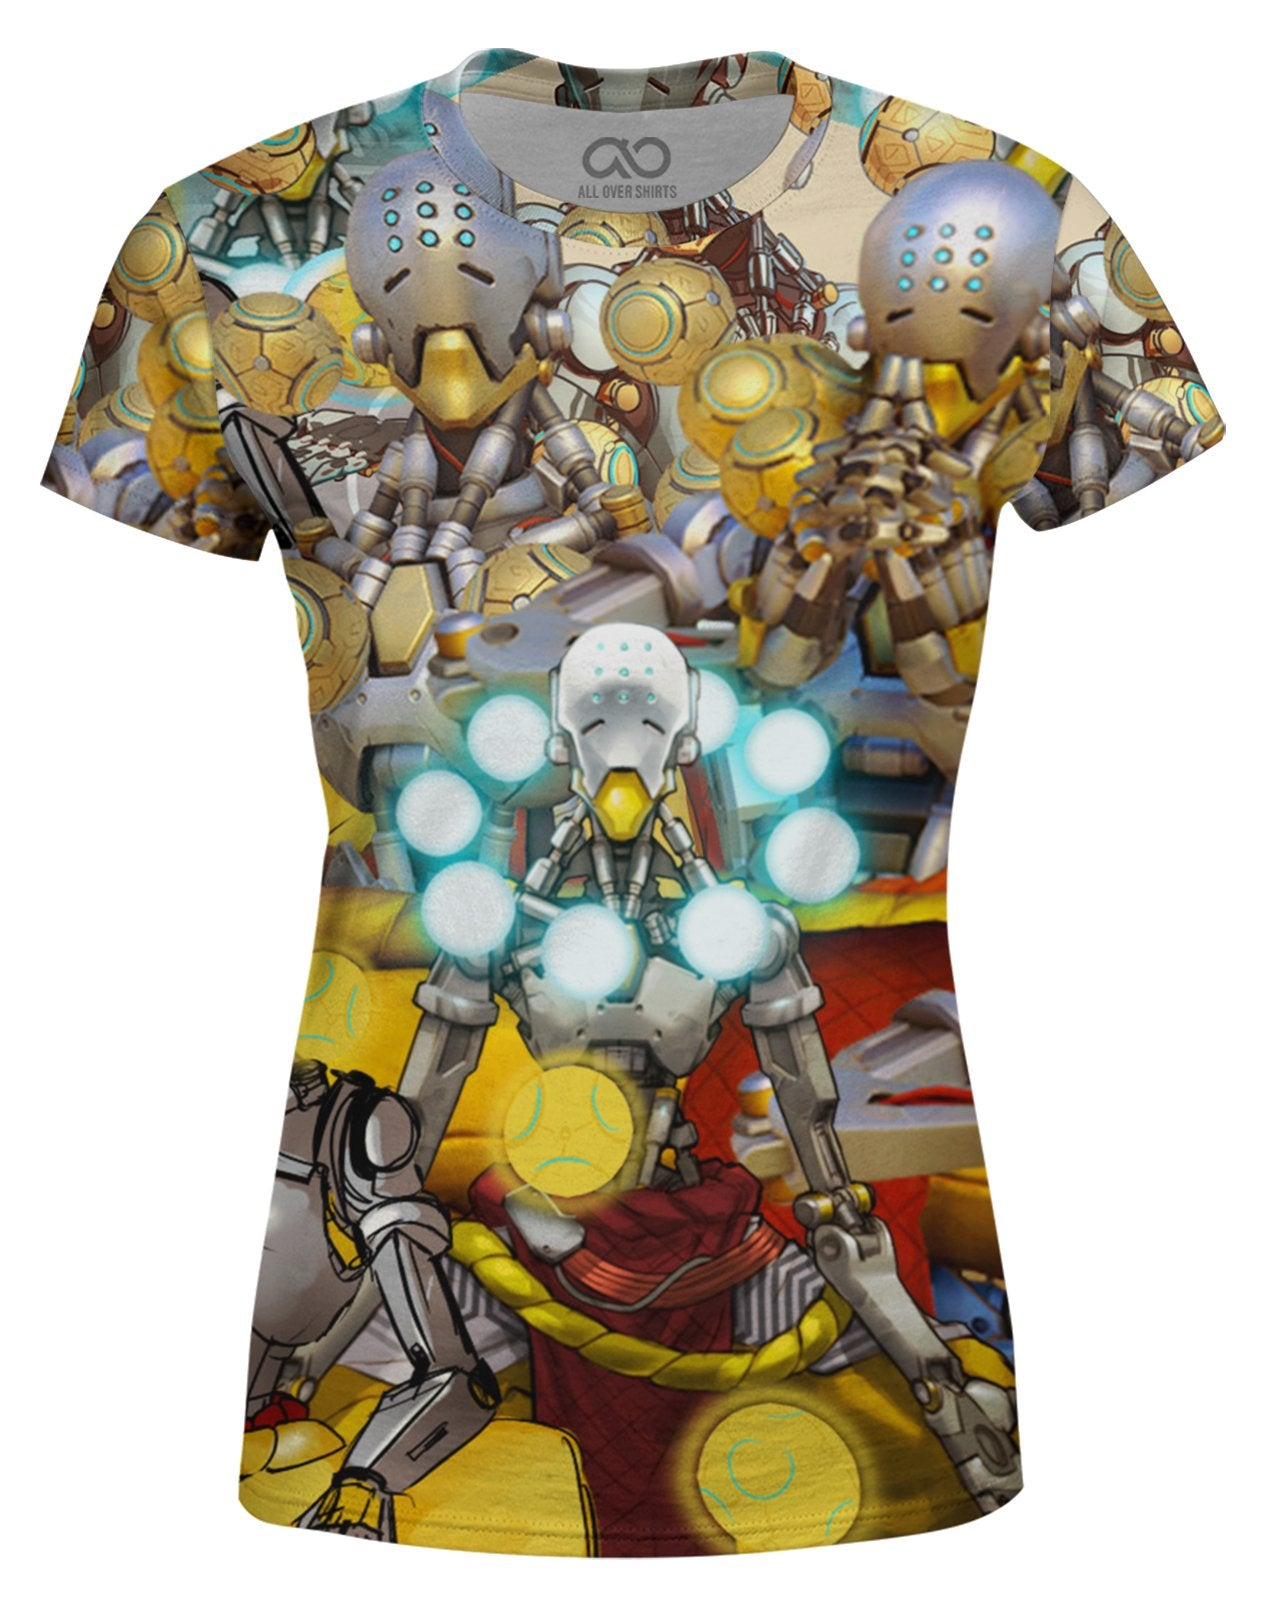 Zenyatta Women's T-shirt